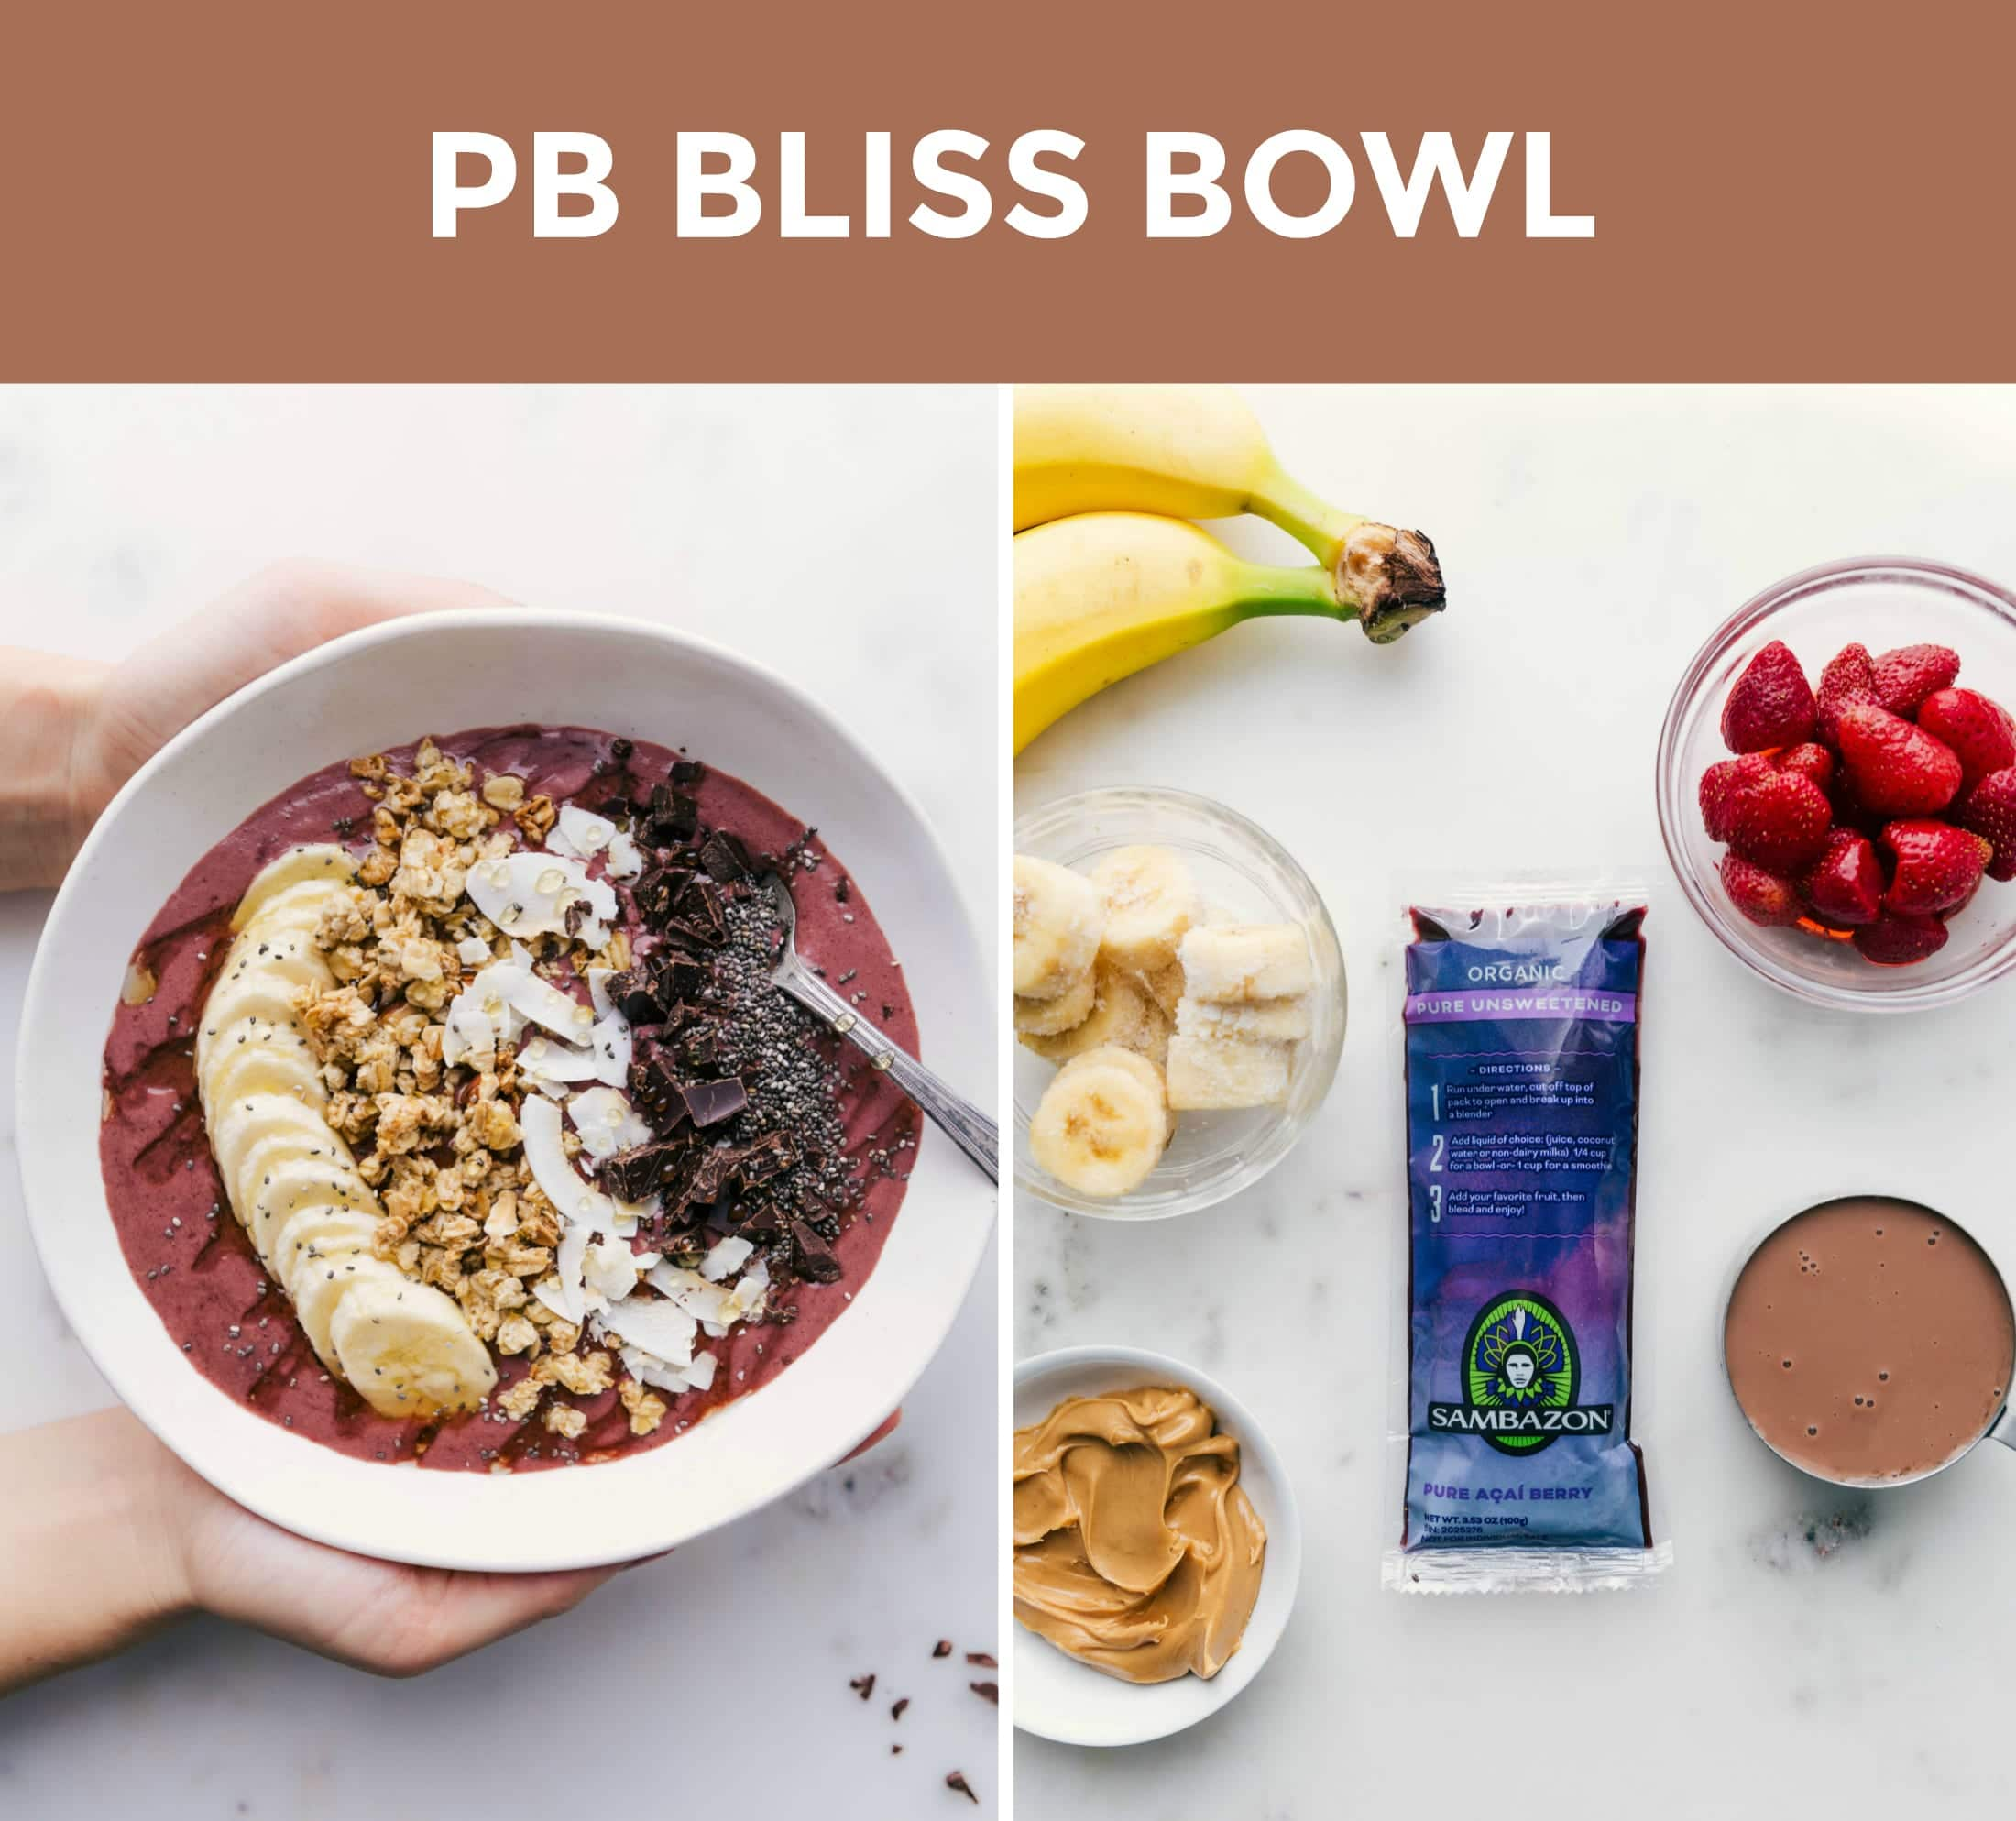 Two side by side photos; on the left is an overhead shot of a peanut butter bliss acai bowl and on the right is an ingredient shot